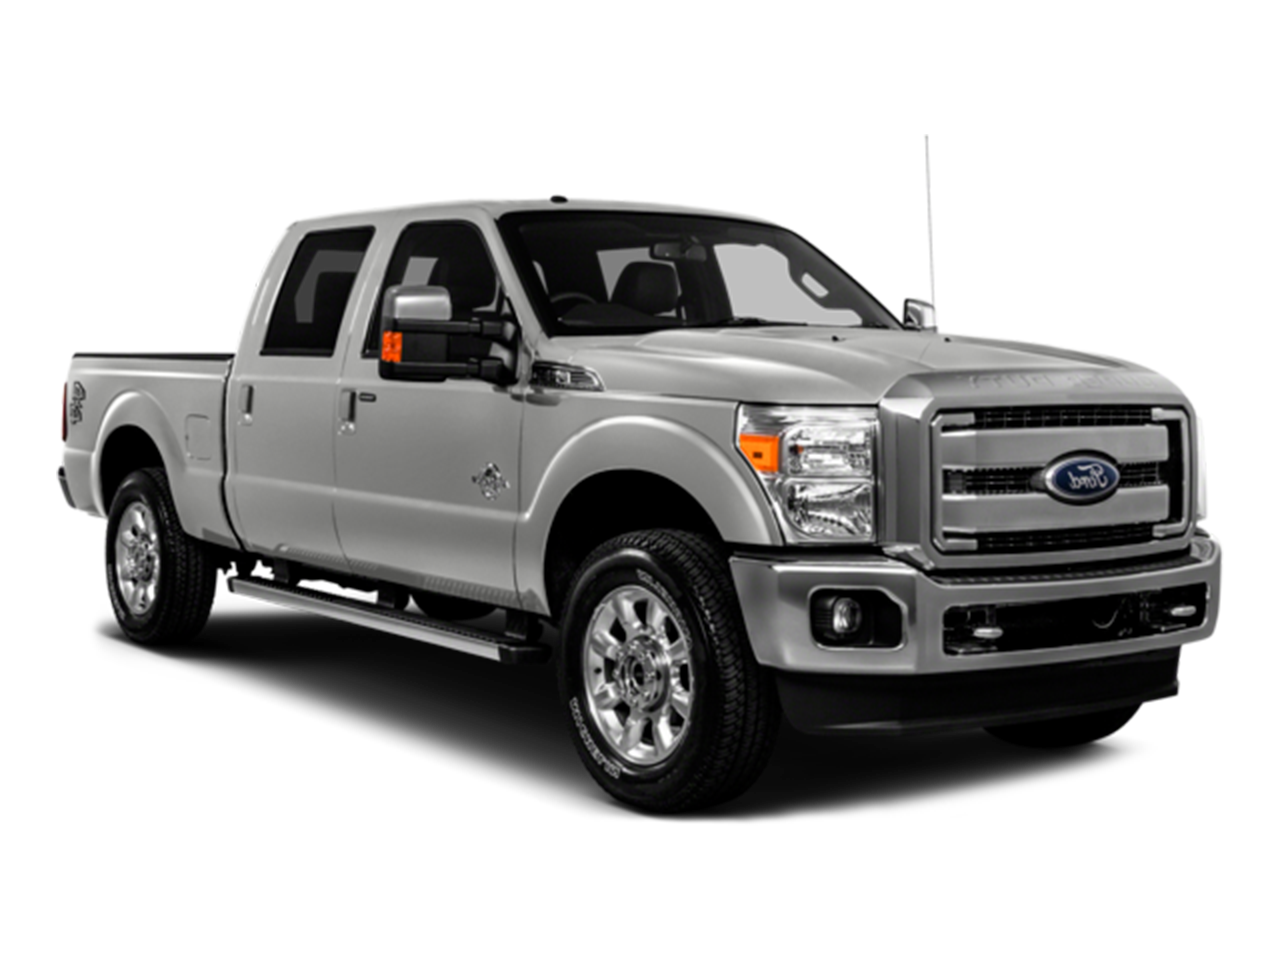 New Ford F-350 at Quirk Ford